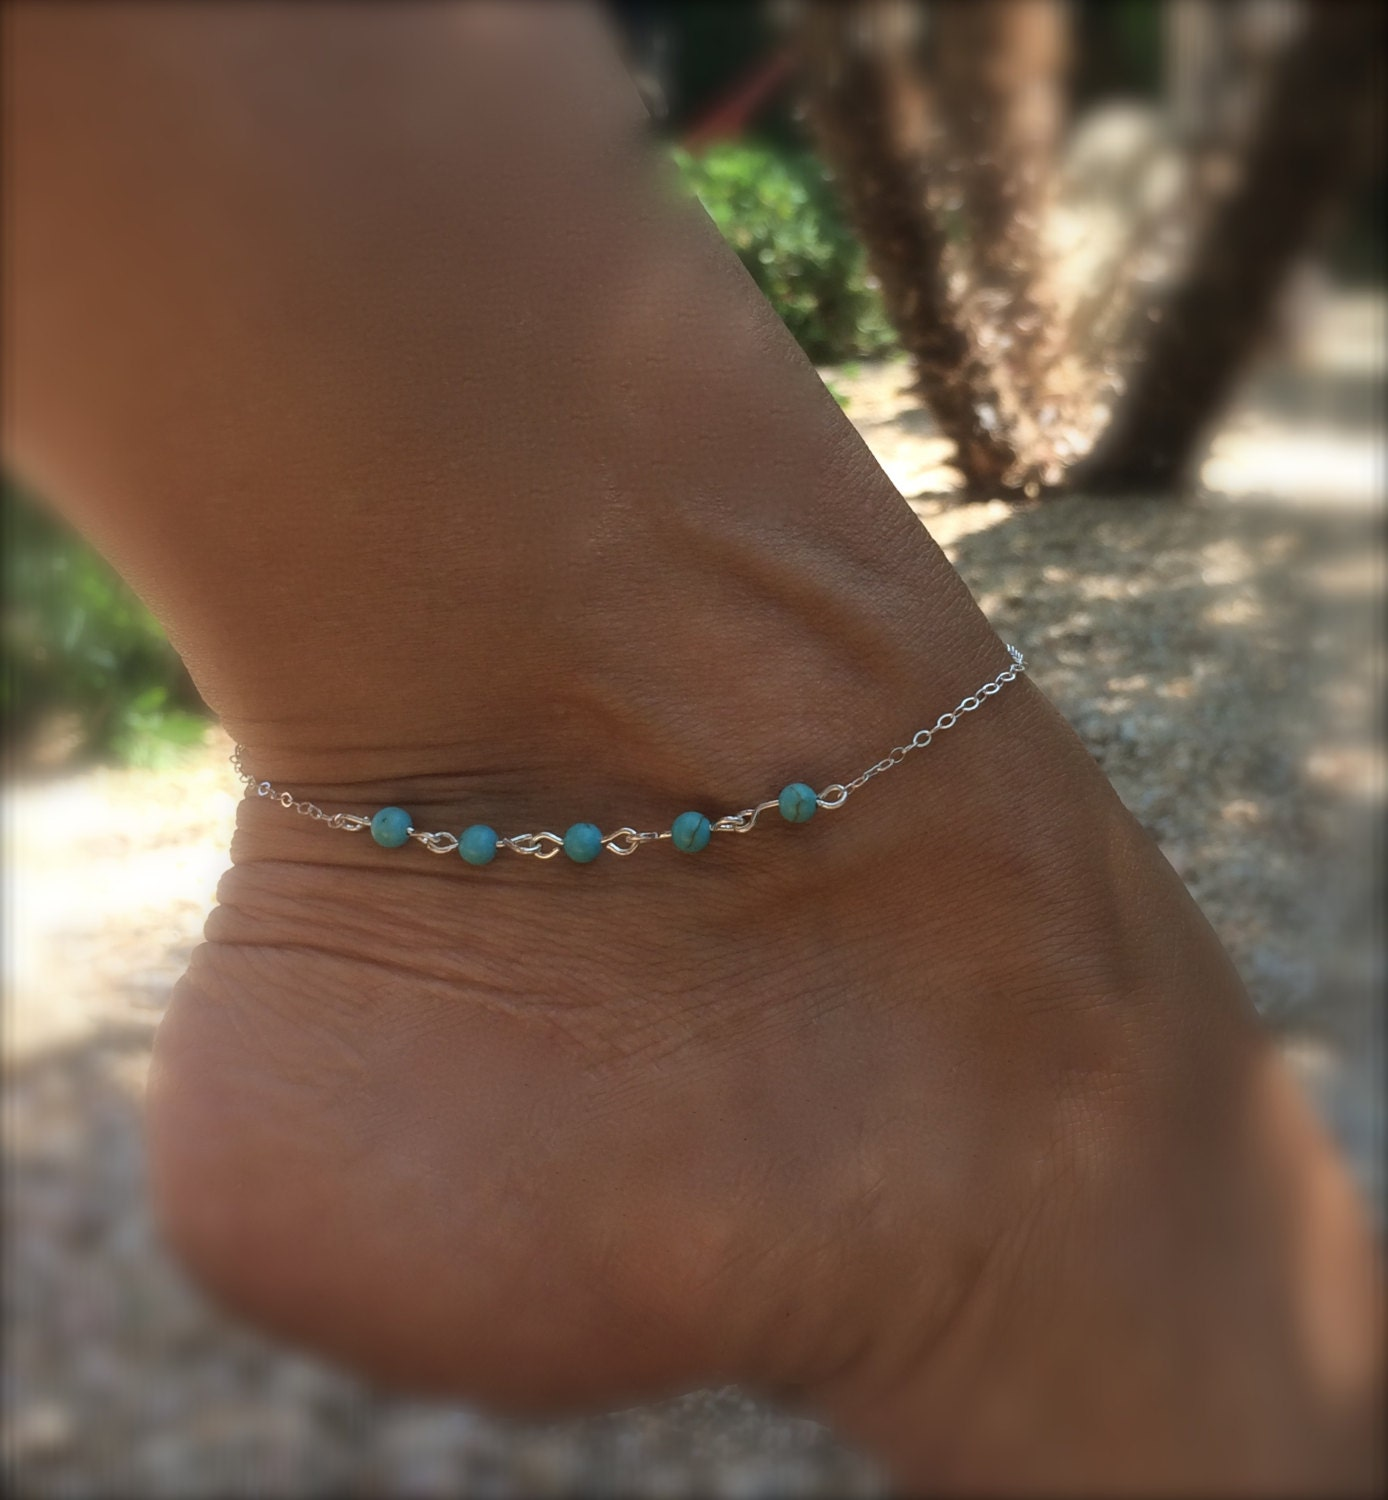 bracelets tatting tatted turquoise anklet barefoot lace pin sandals